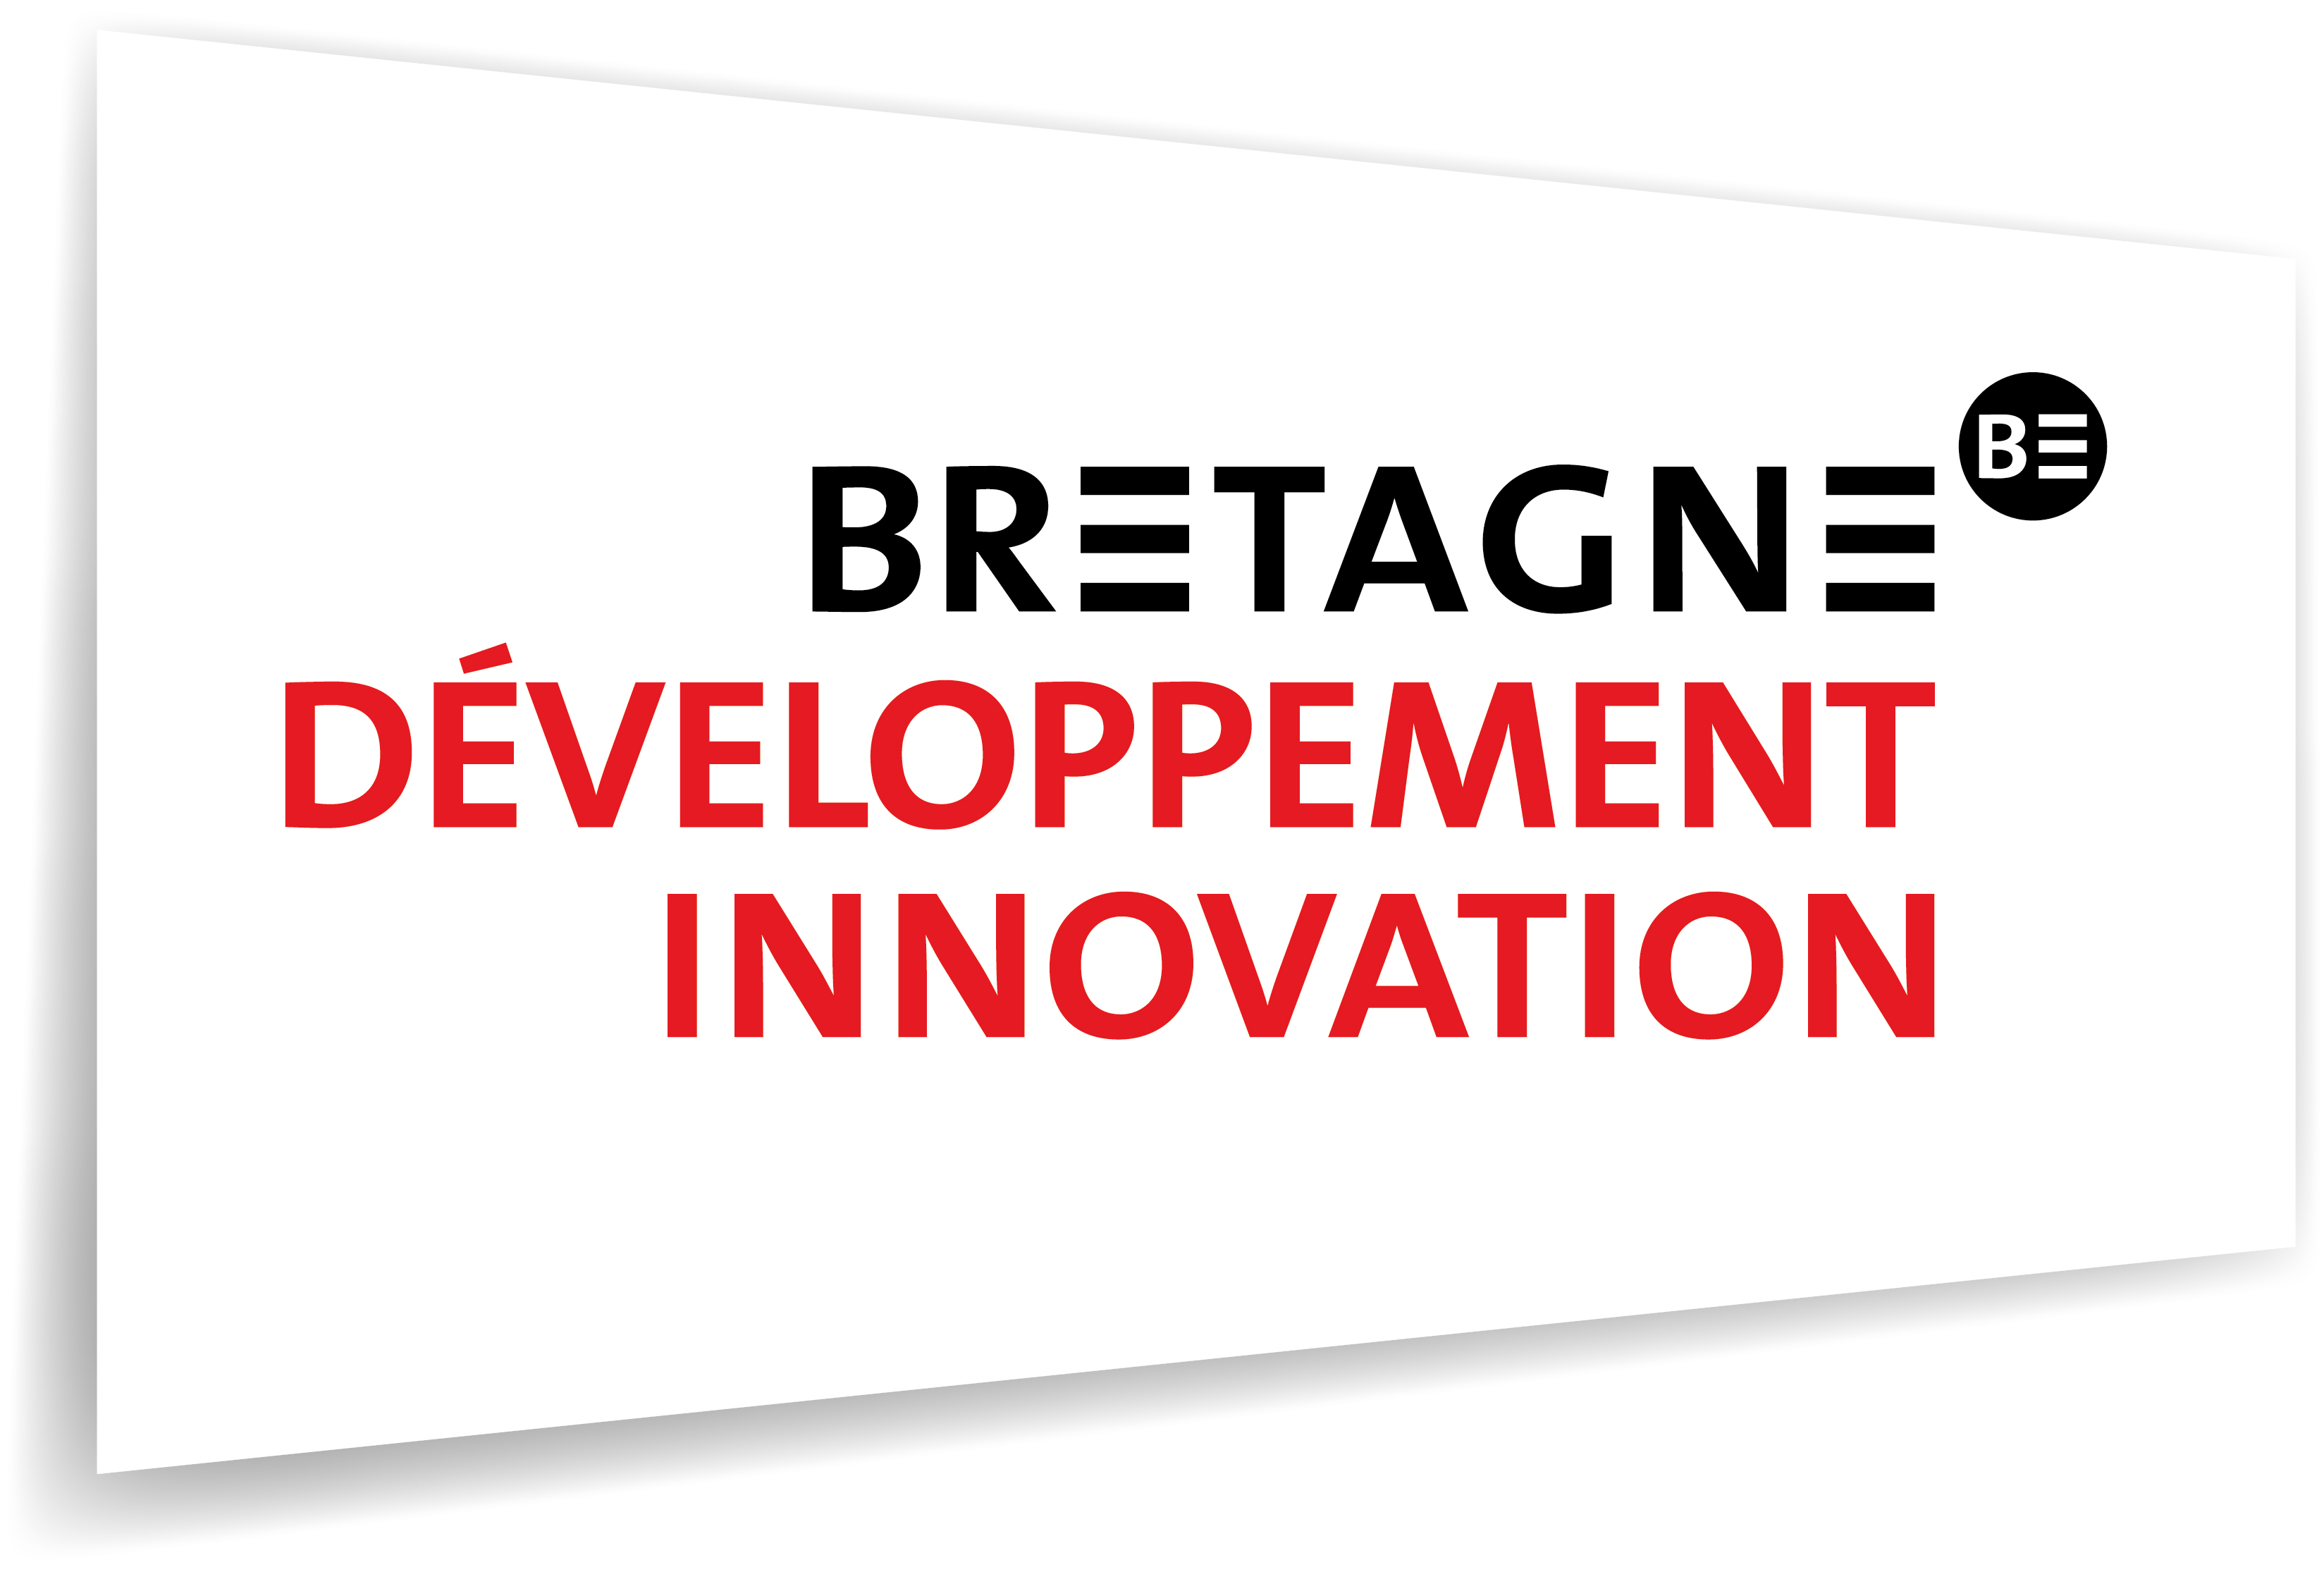 Bretagne Developpement Innovation